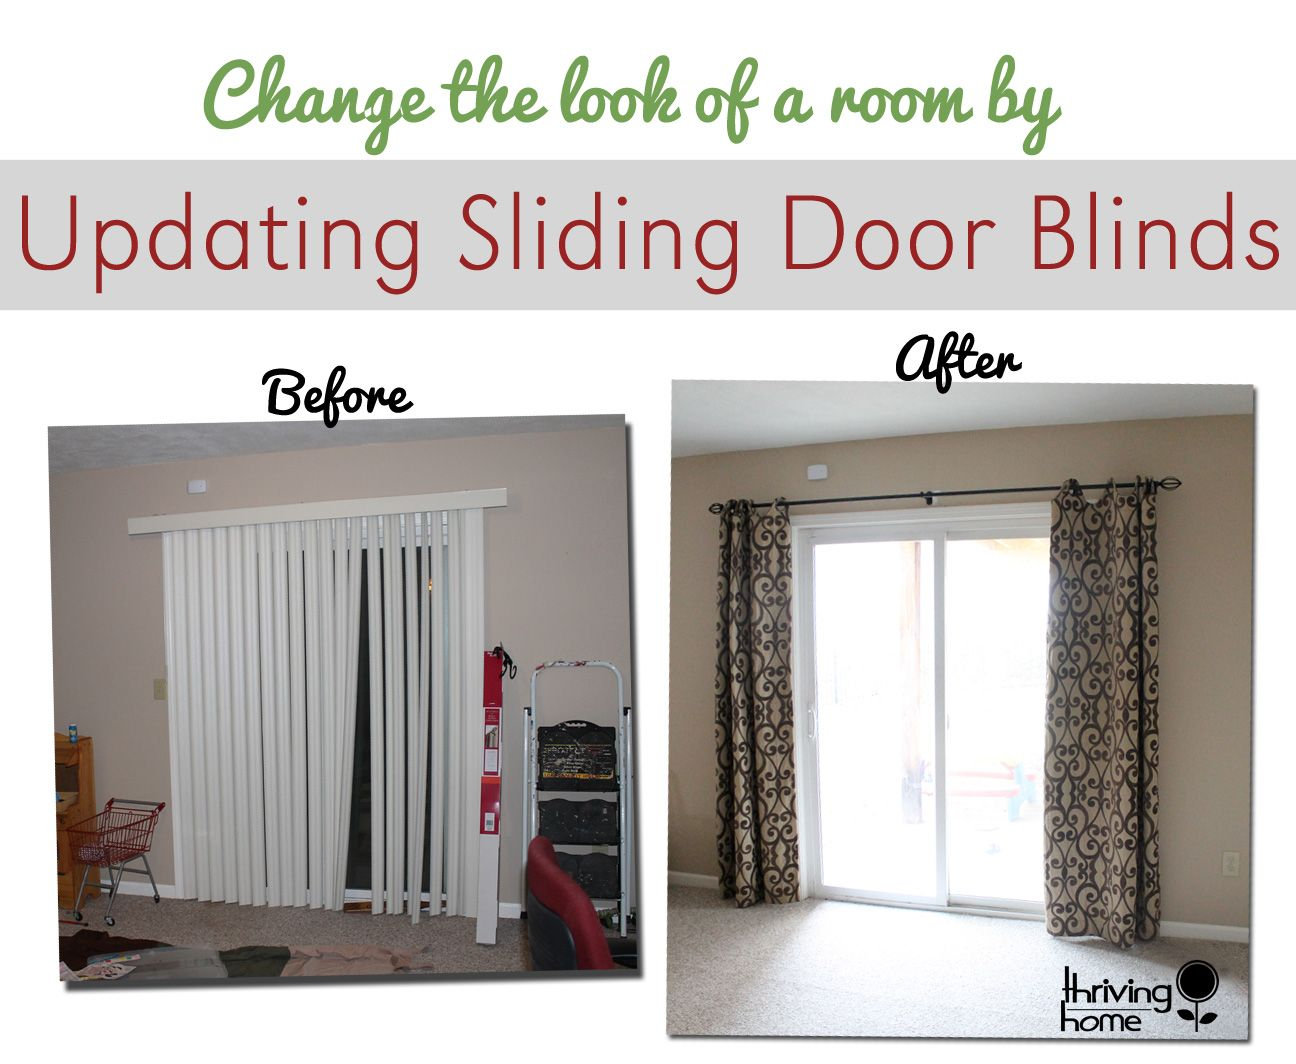 Super easy home update replace those sliding blinds with a super easy home update replace those sliding blinds with a curtain rod and curtains curtains for sliding doorspatio eventelaan Images